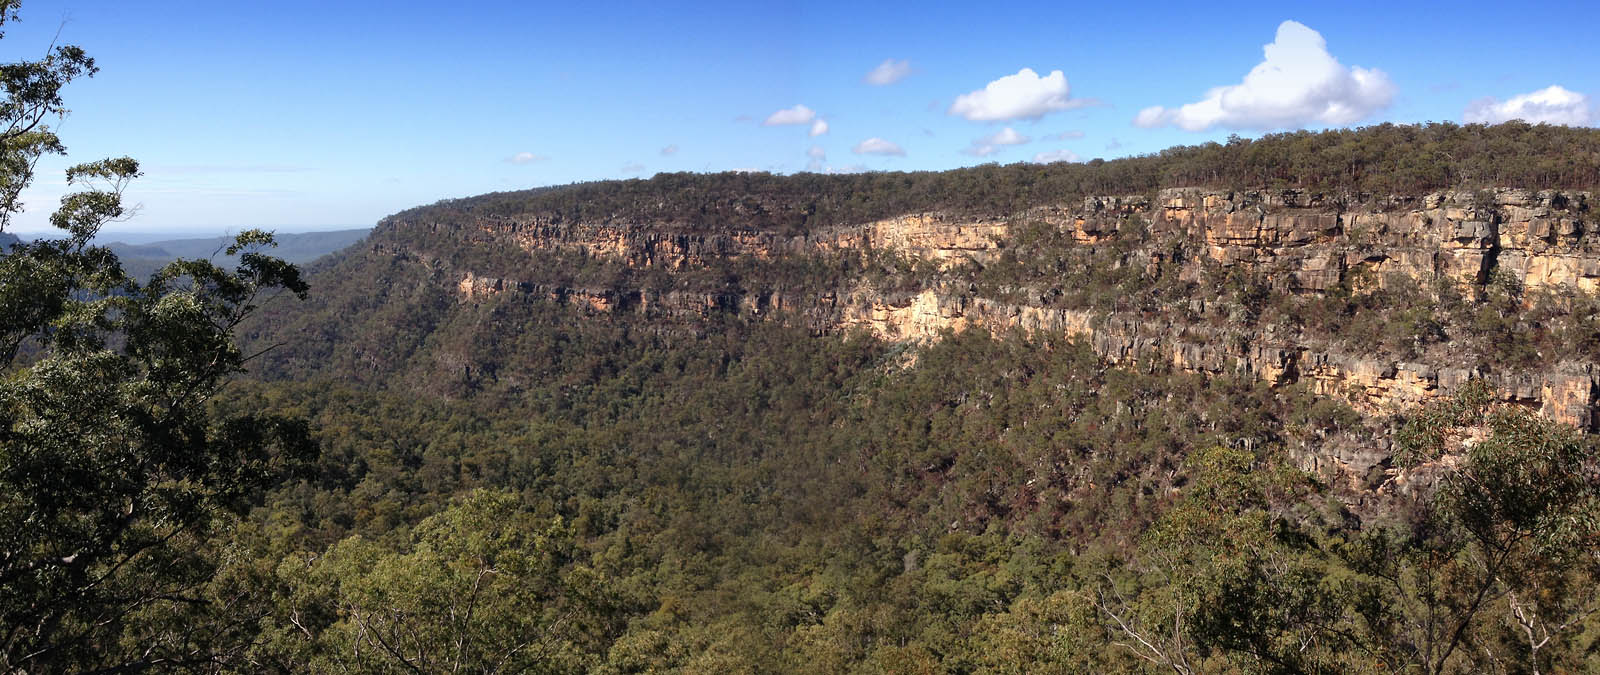 Mock Mock lookout - Blackdown Tableland-NP